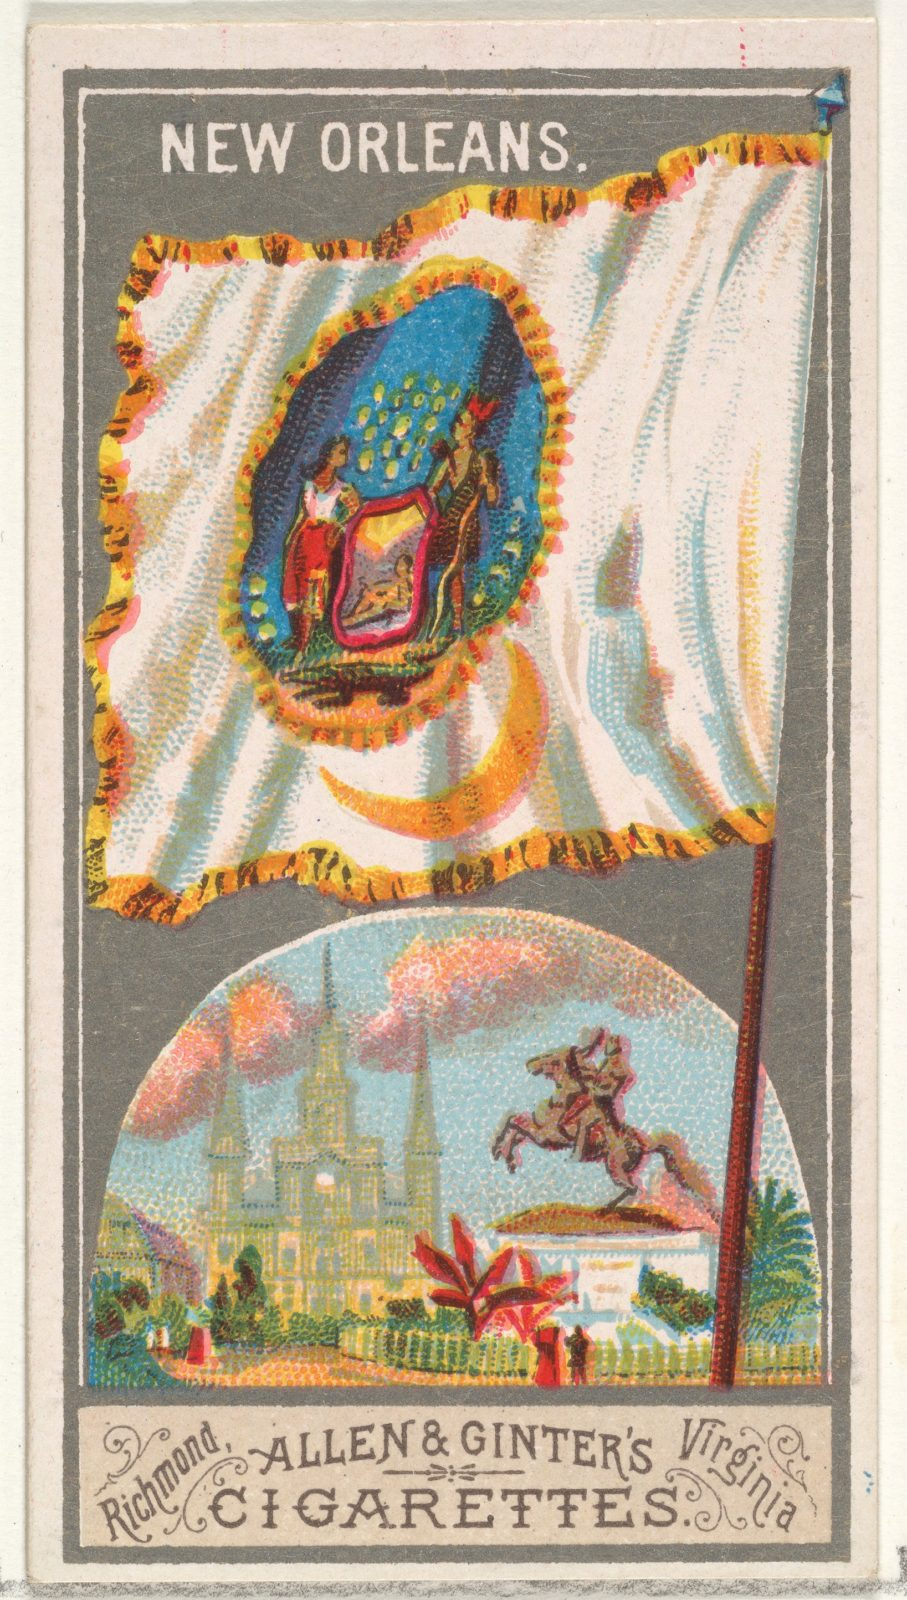 New Orleans, from the City Flags series (N6) for Allen & Ginter Cigarettes Brands